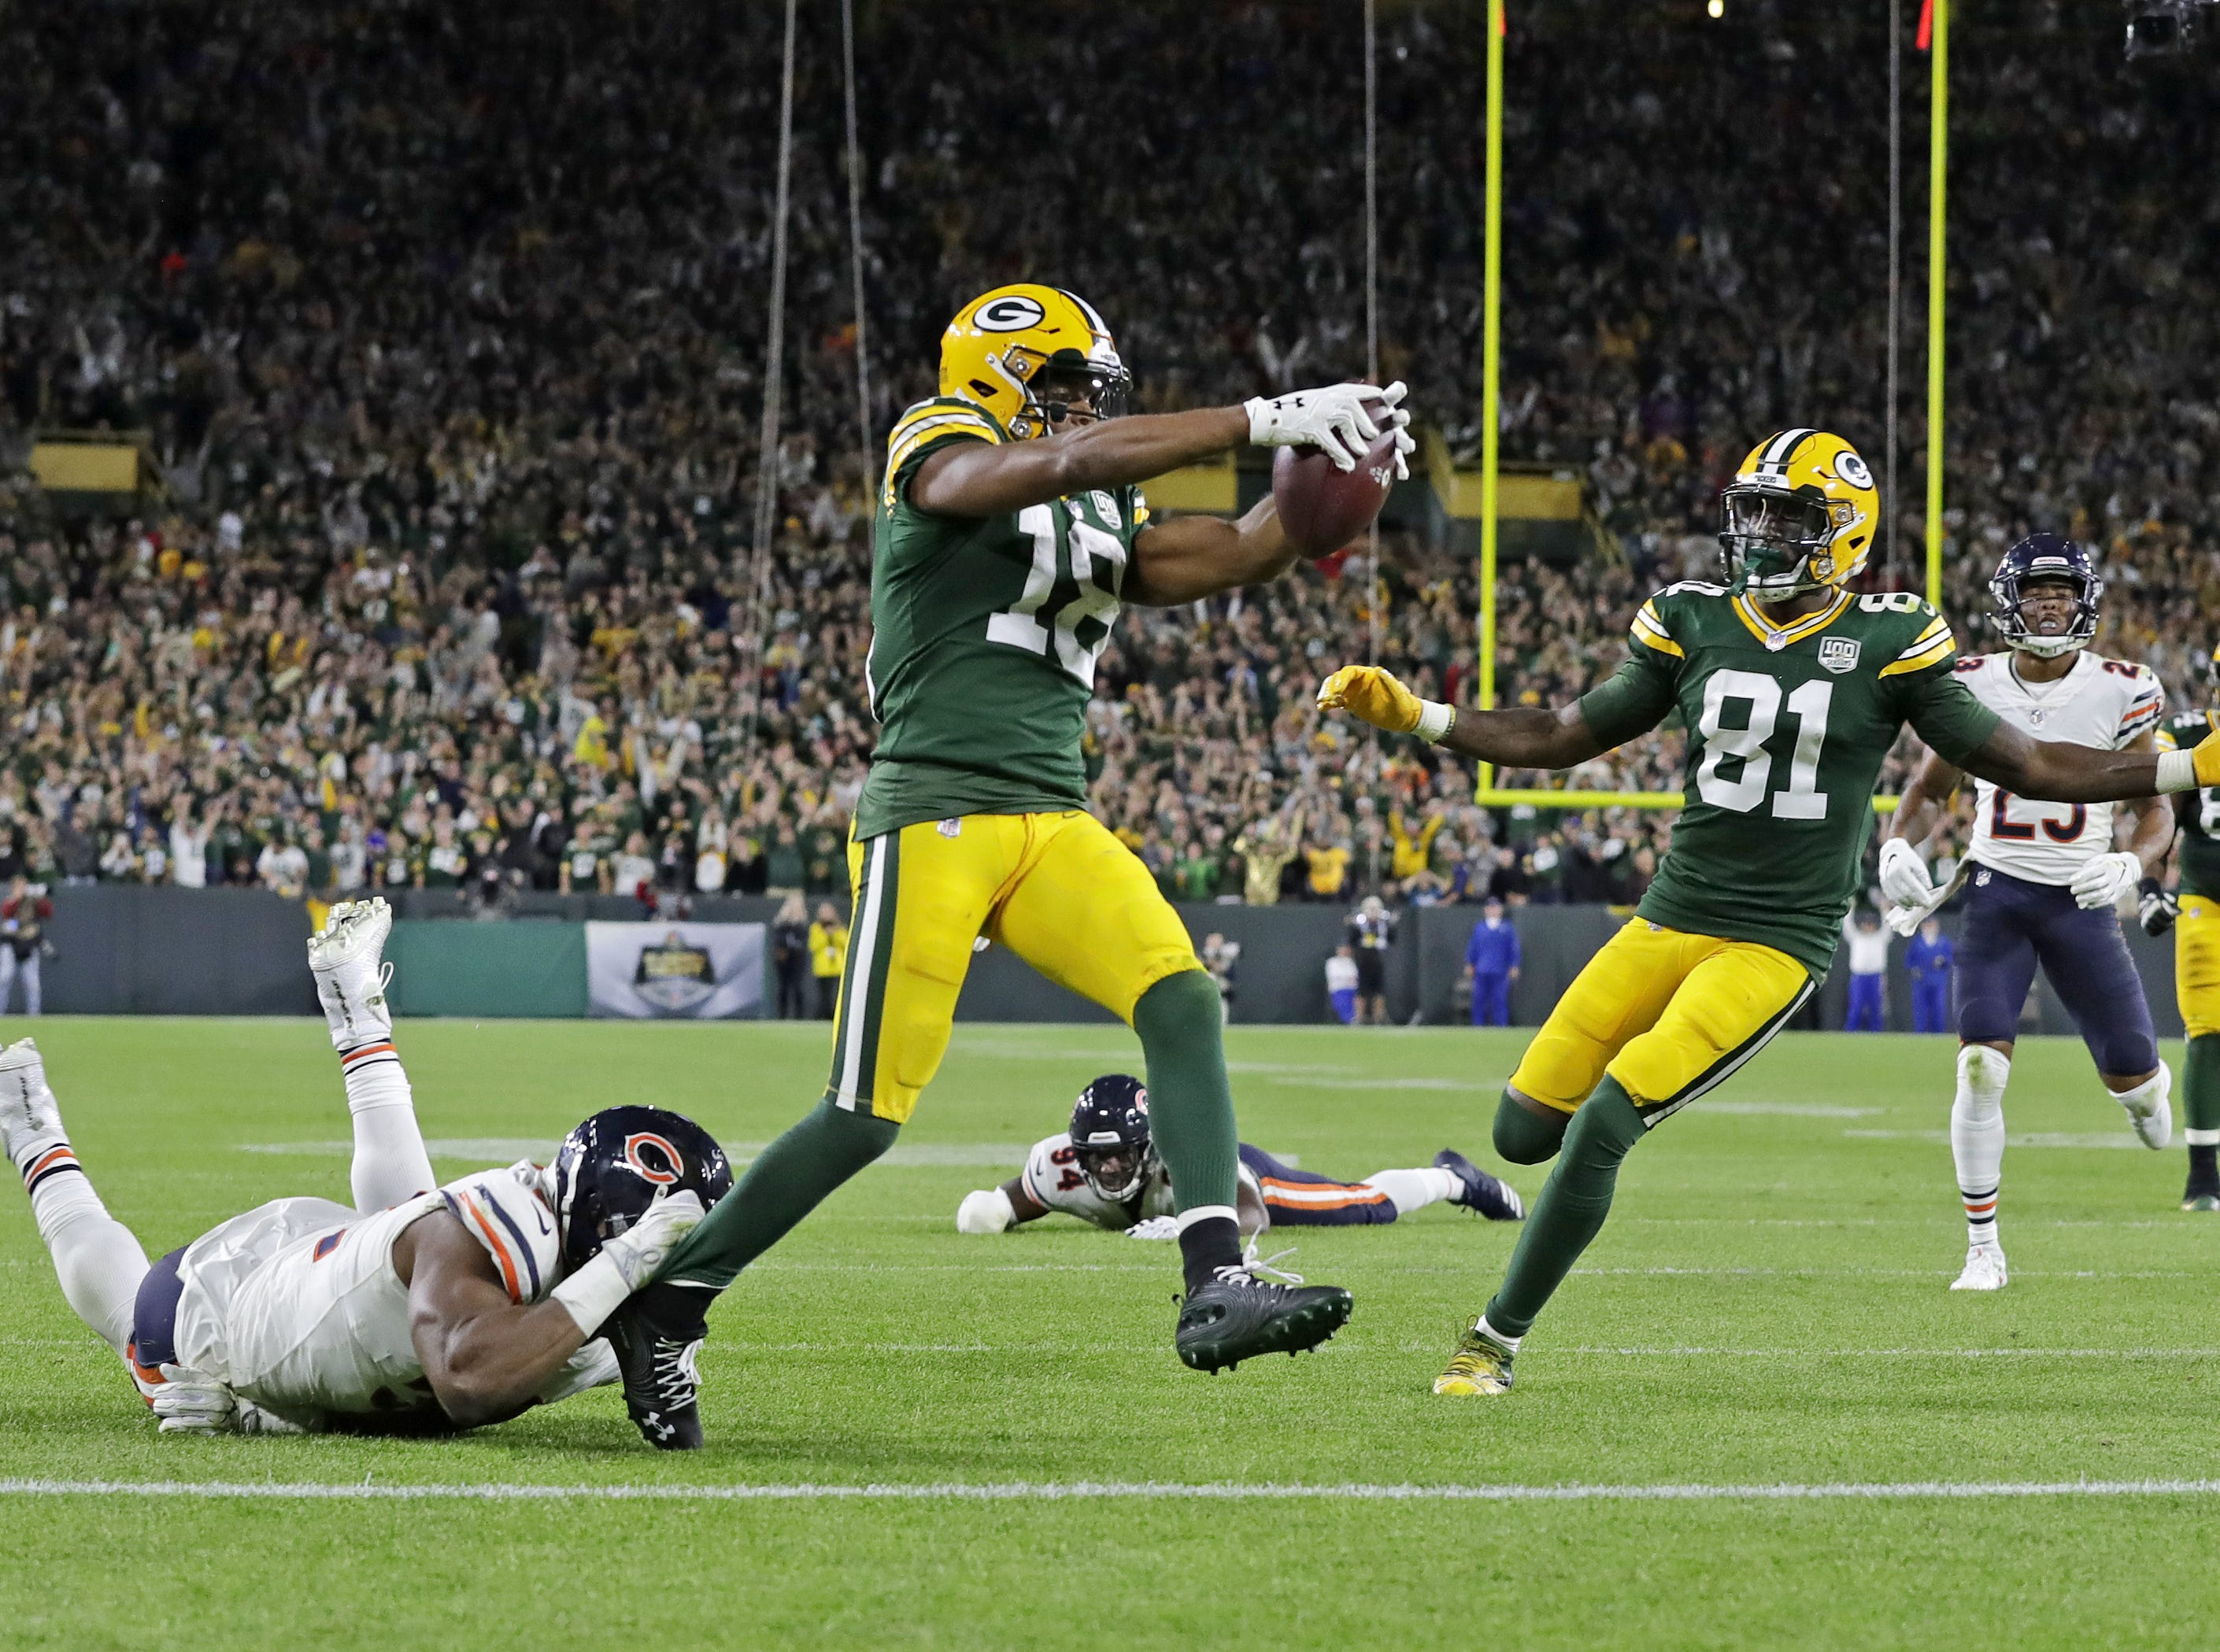 Green Bay Packers wide receiver Randall Cobb (18) scores a 75-yard touchdown against the Chicago Bears in the fourth quarter at Lambeau Field on Sunday, September 9, 2018 in Green Bay, Wis.